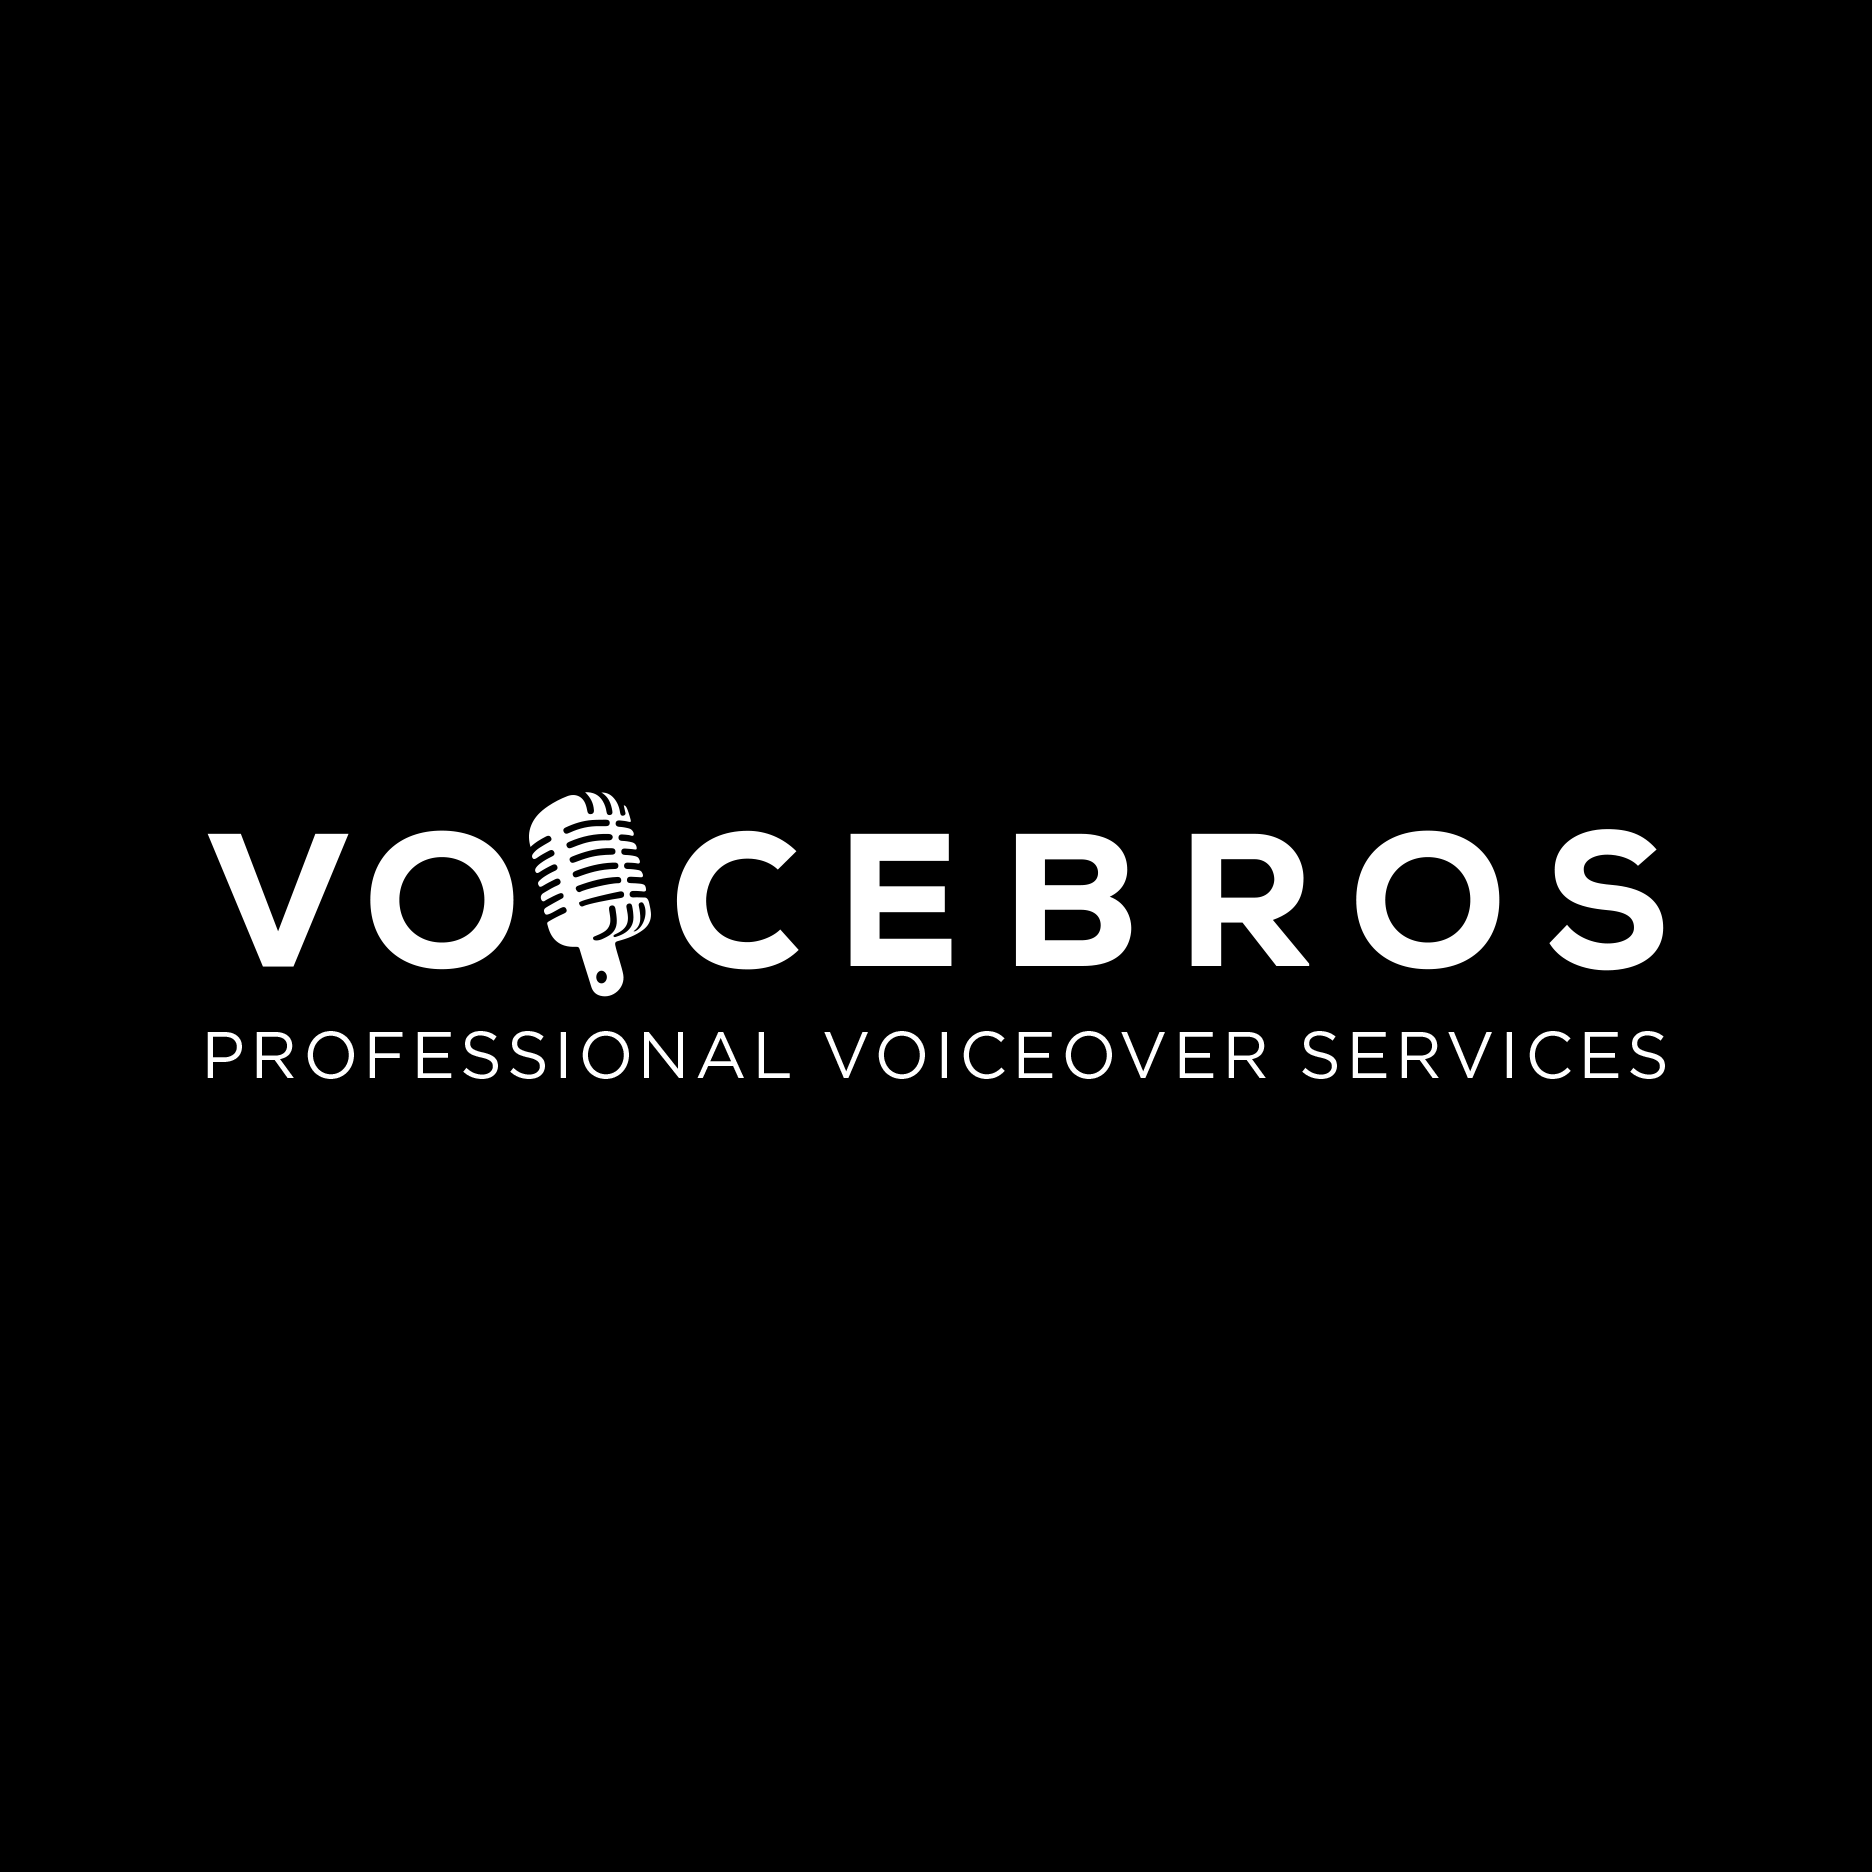 Katherine Mataganas is a voice over actor